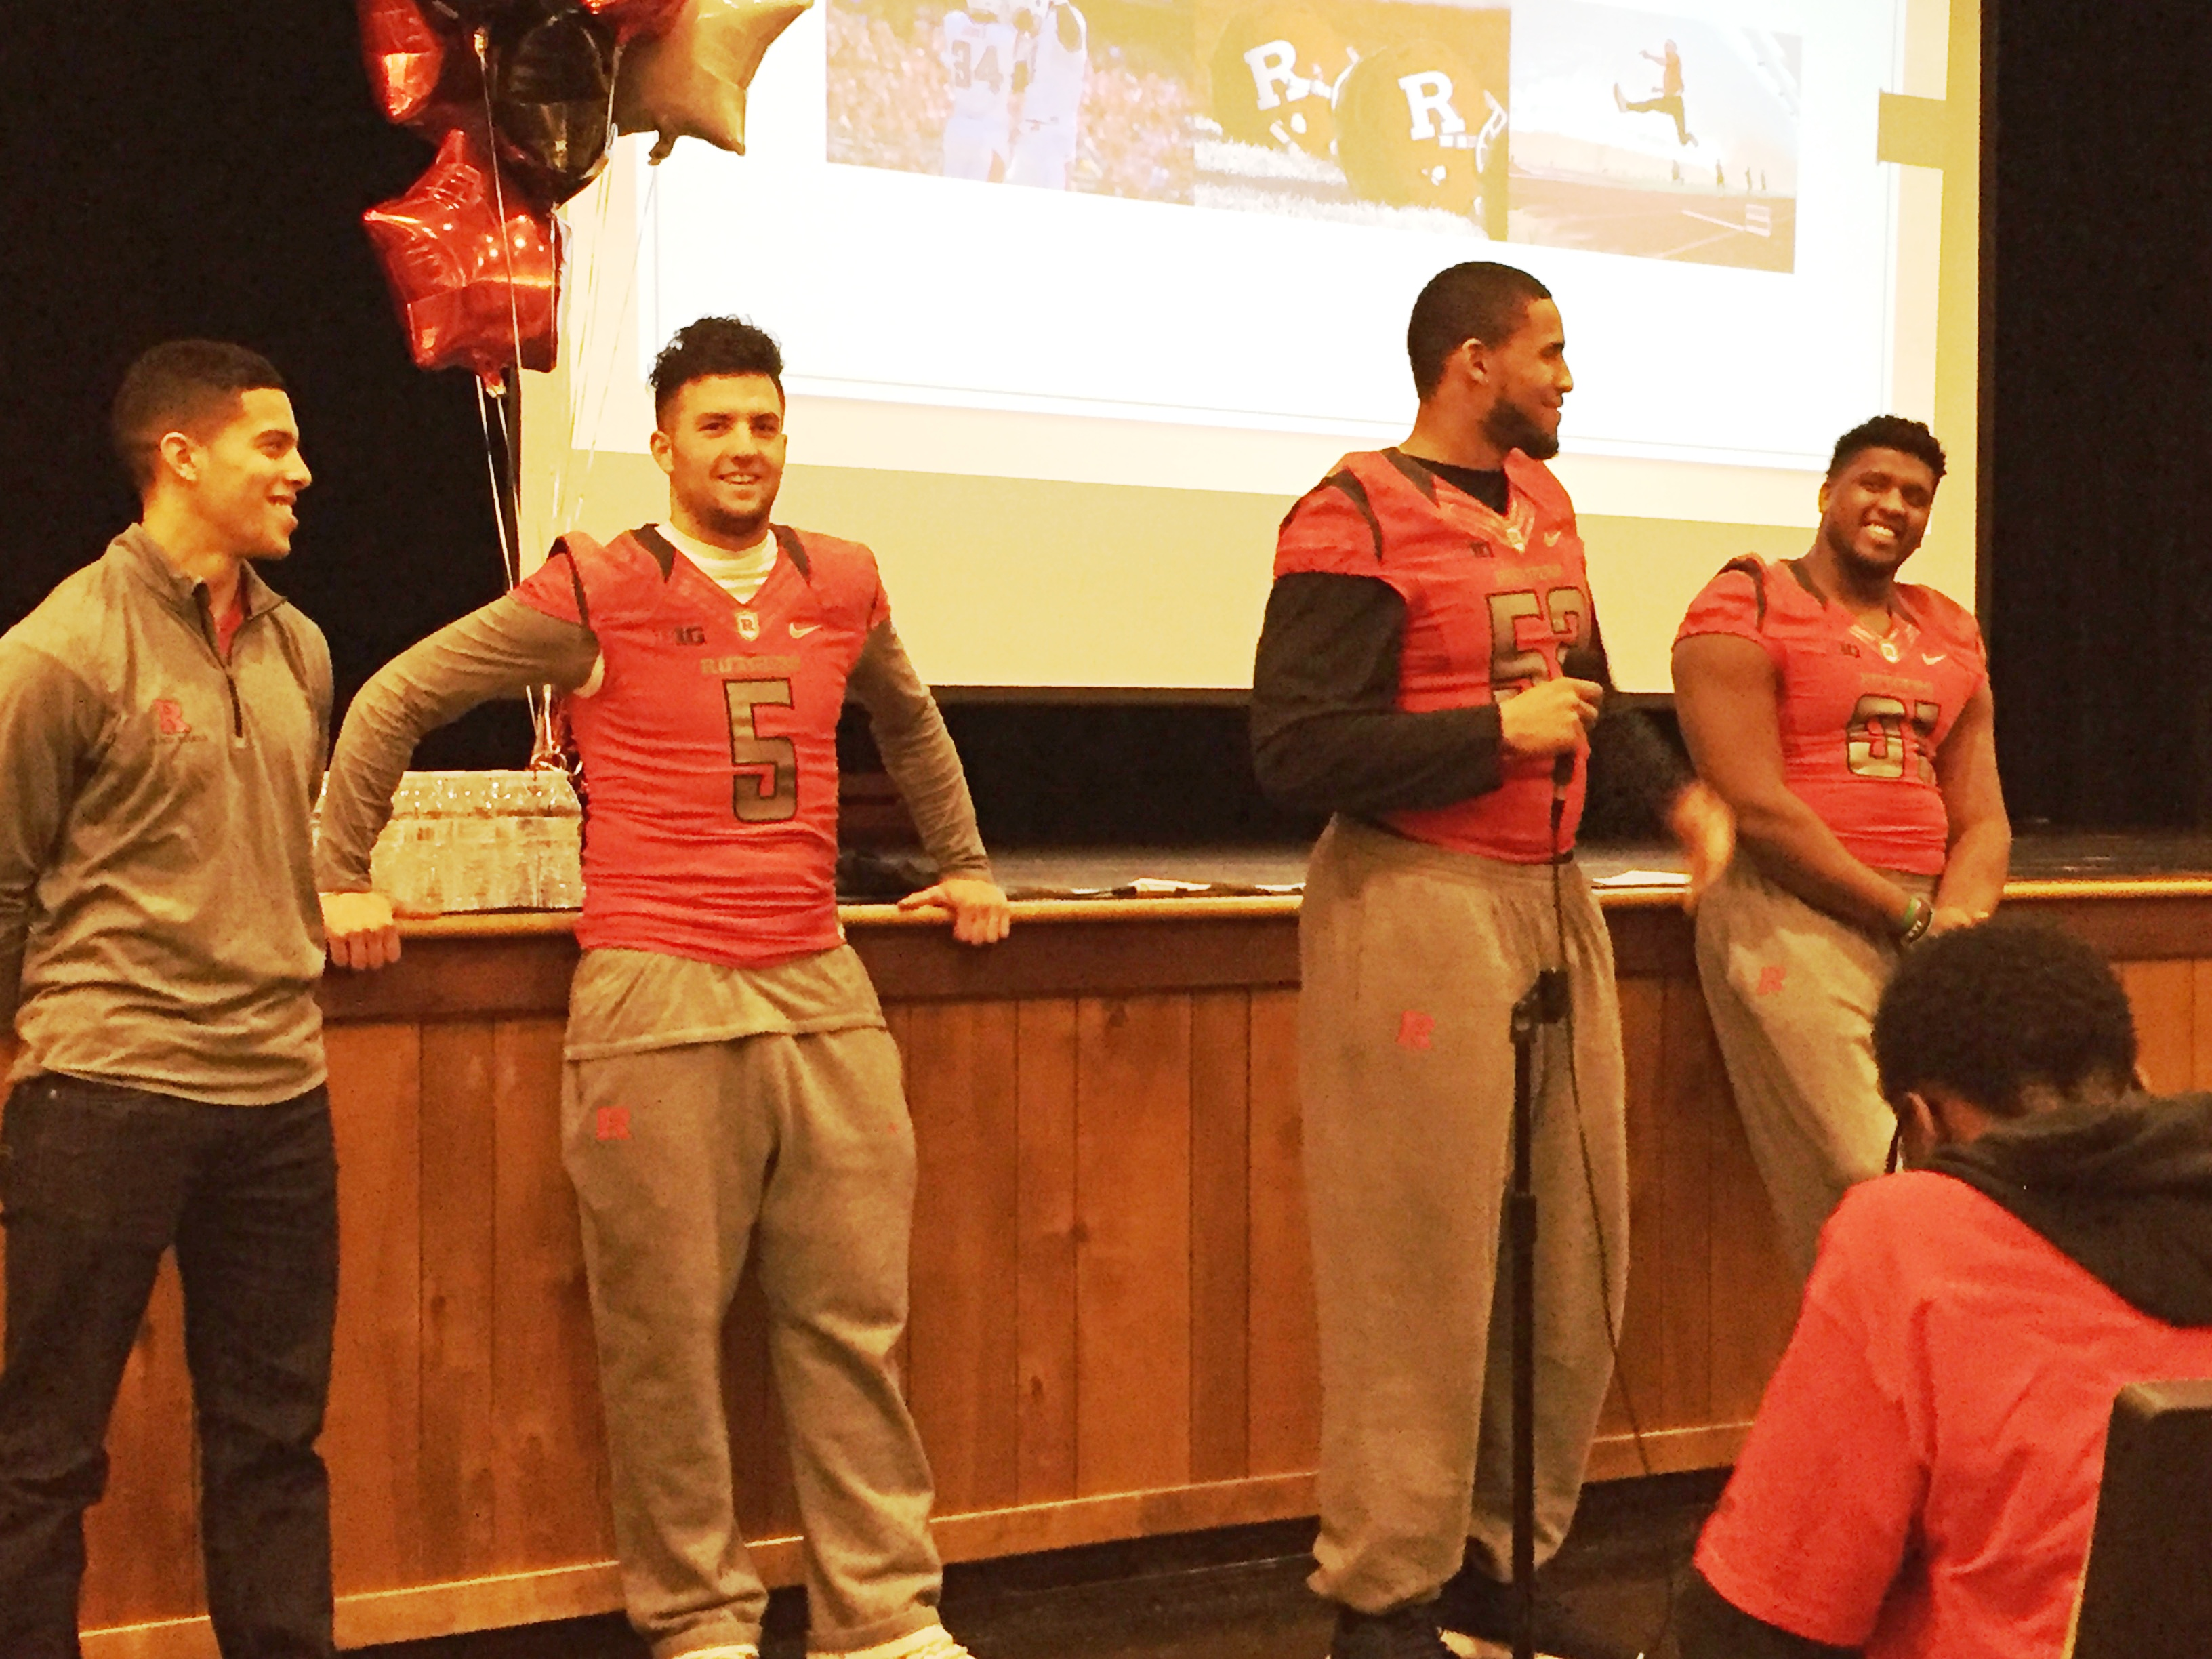 411beb40feb23c368788_Schor_MS_Rutgers_Football_Assembly_050.JPG